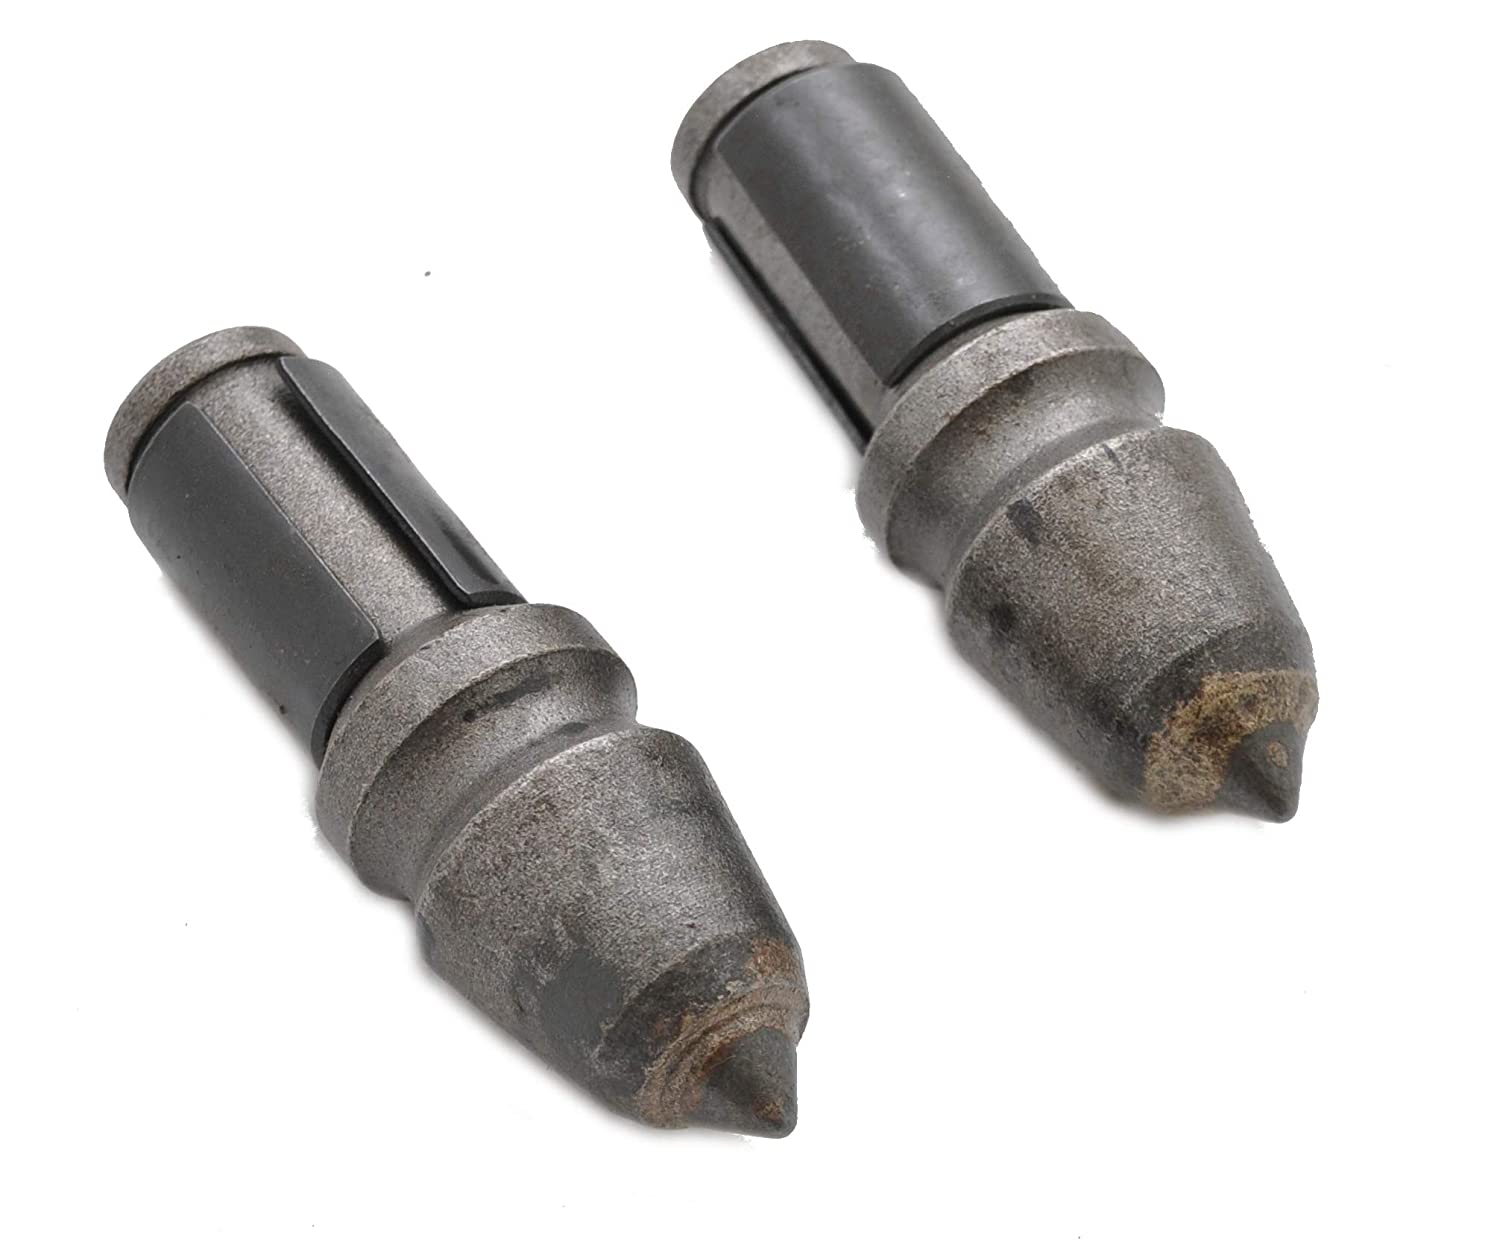 Pair of C21 Carbide Bullet Teeth for Rock Augers ToolTuff